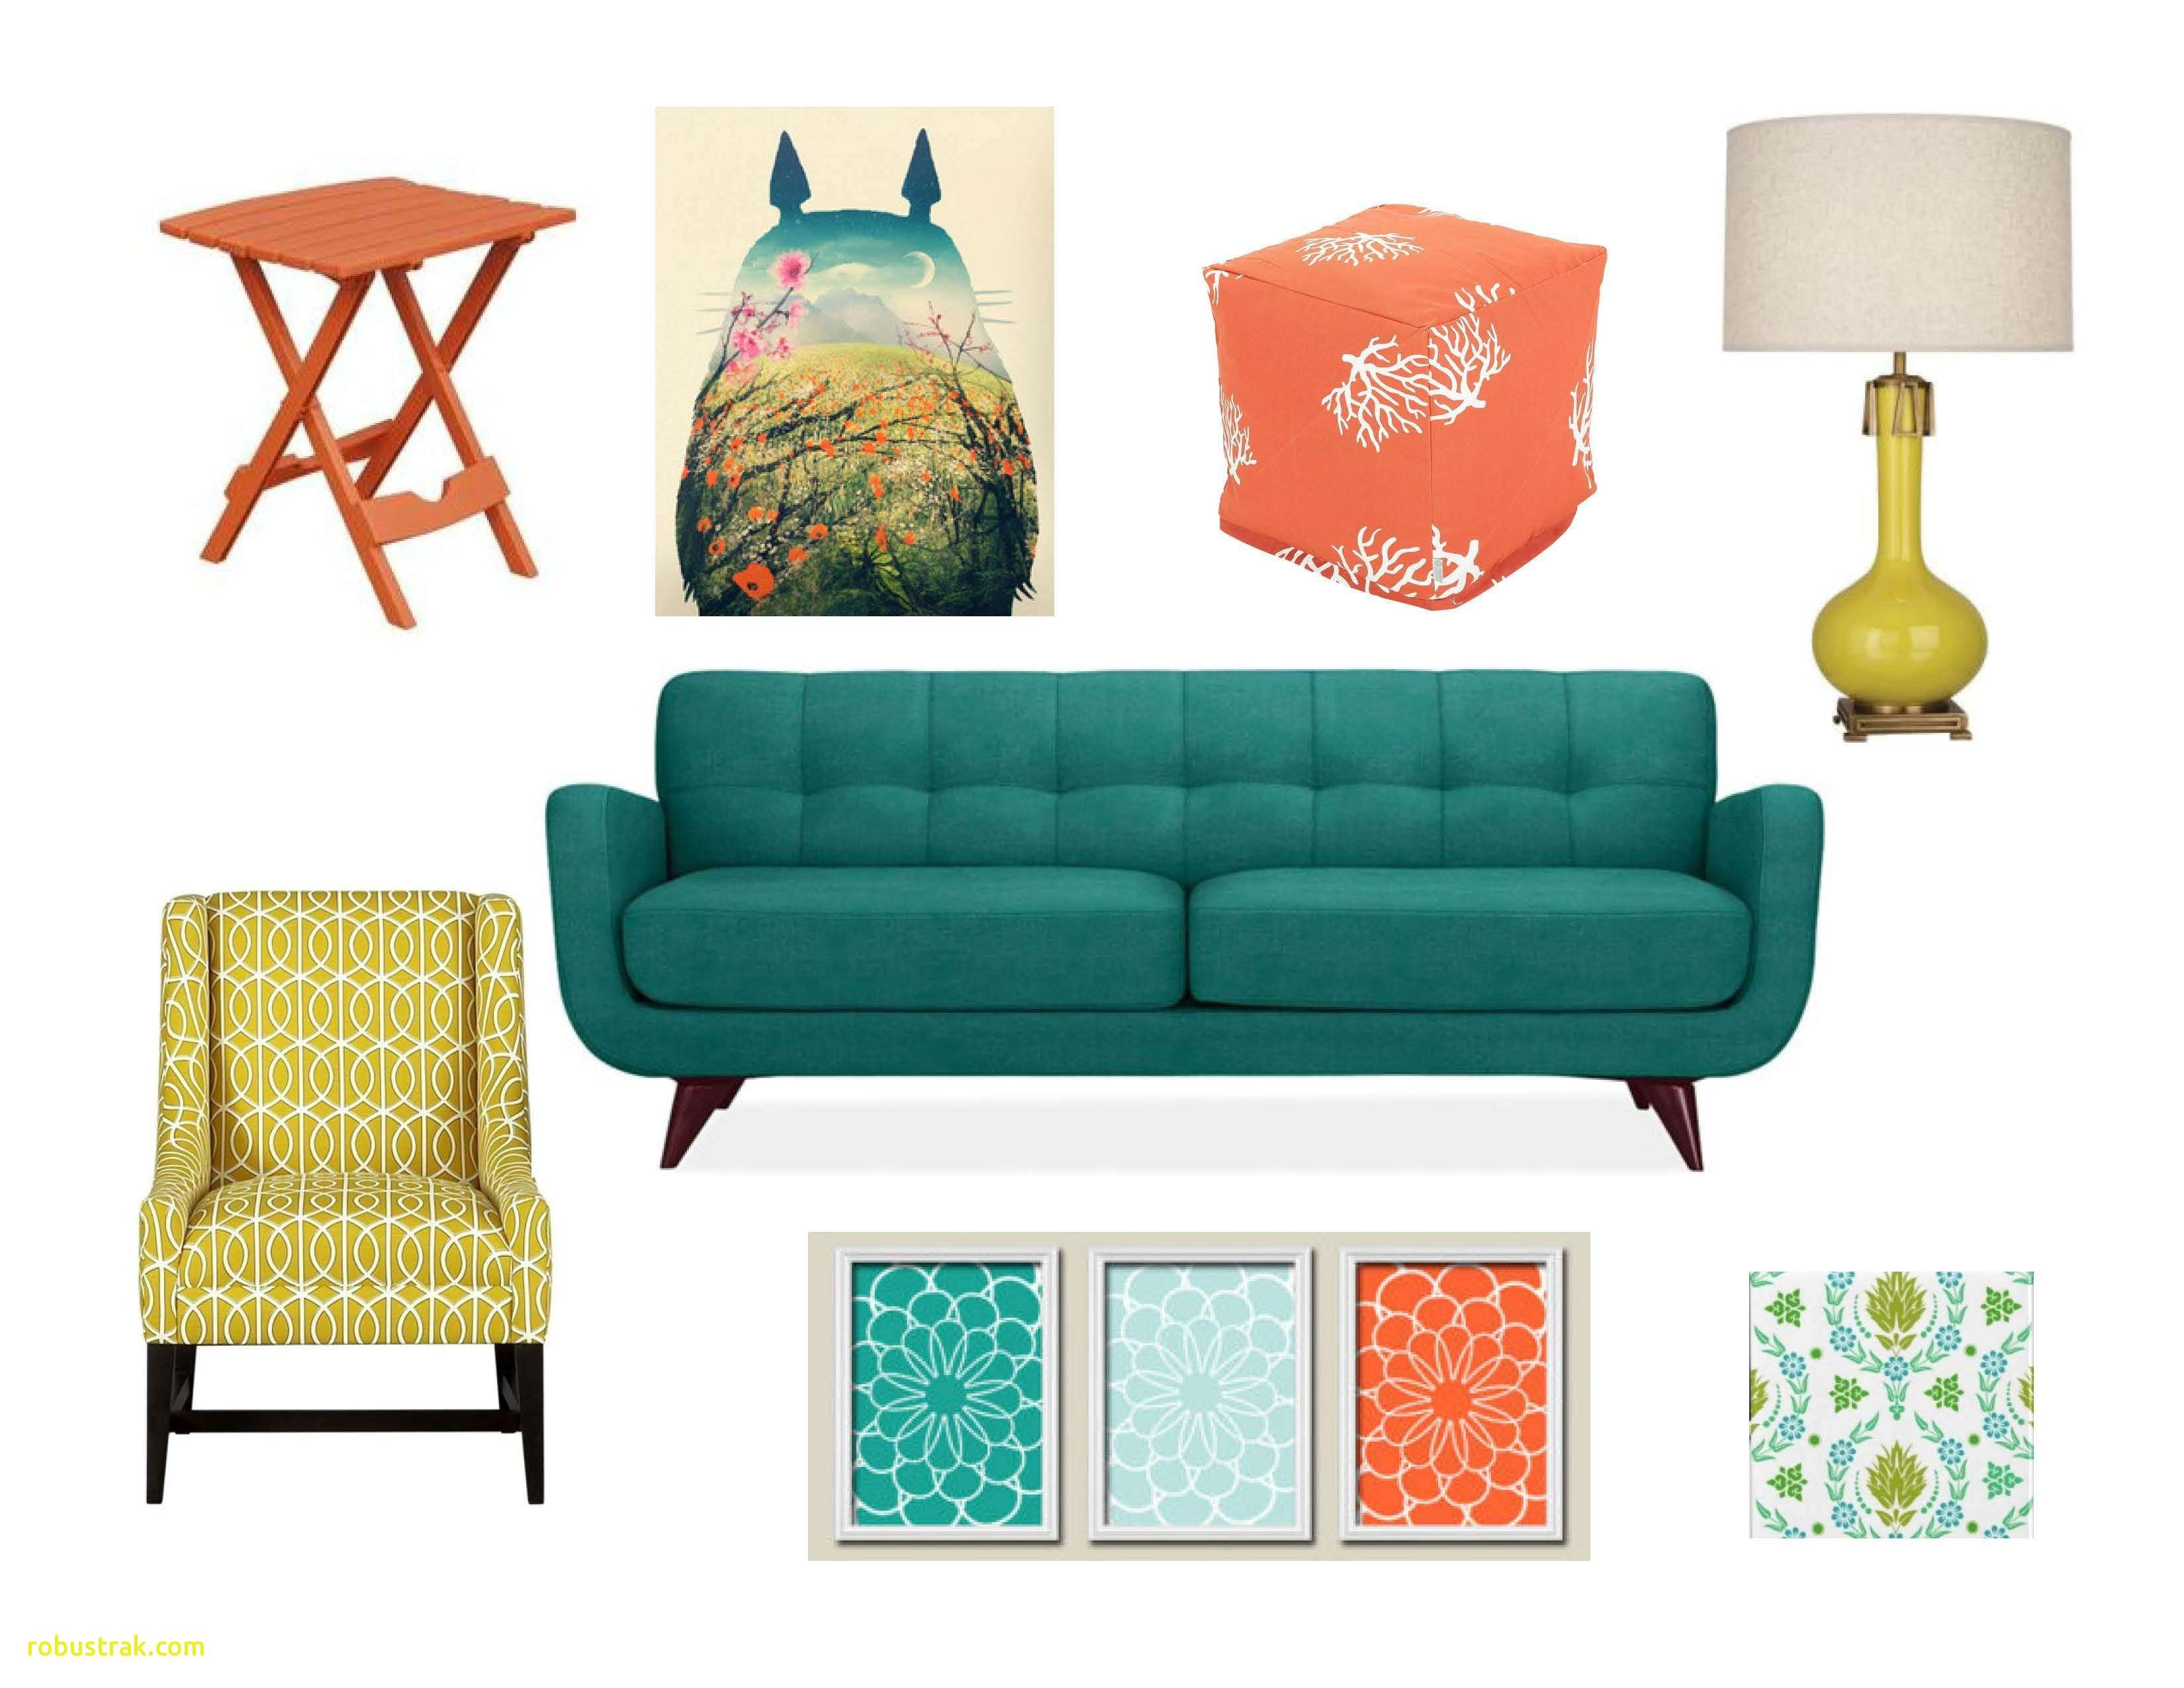 Our Living Room Color Scheme Muted Turquoise Burnt Orange Golden Yellow And Pea Green Color Sche Living Room Orange Living Room Color Schemes Living Room Color